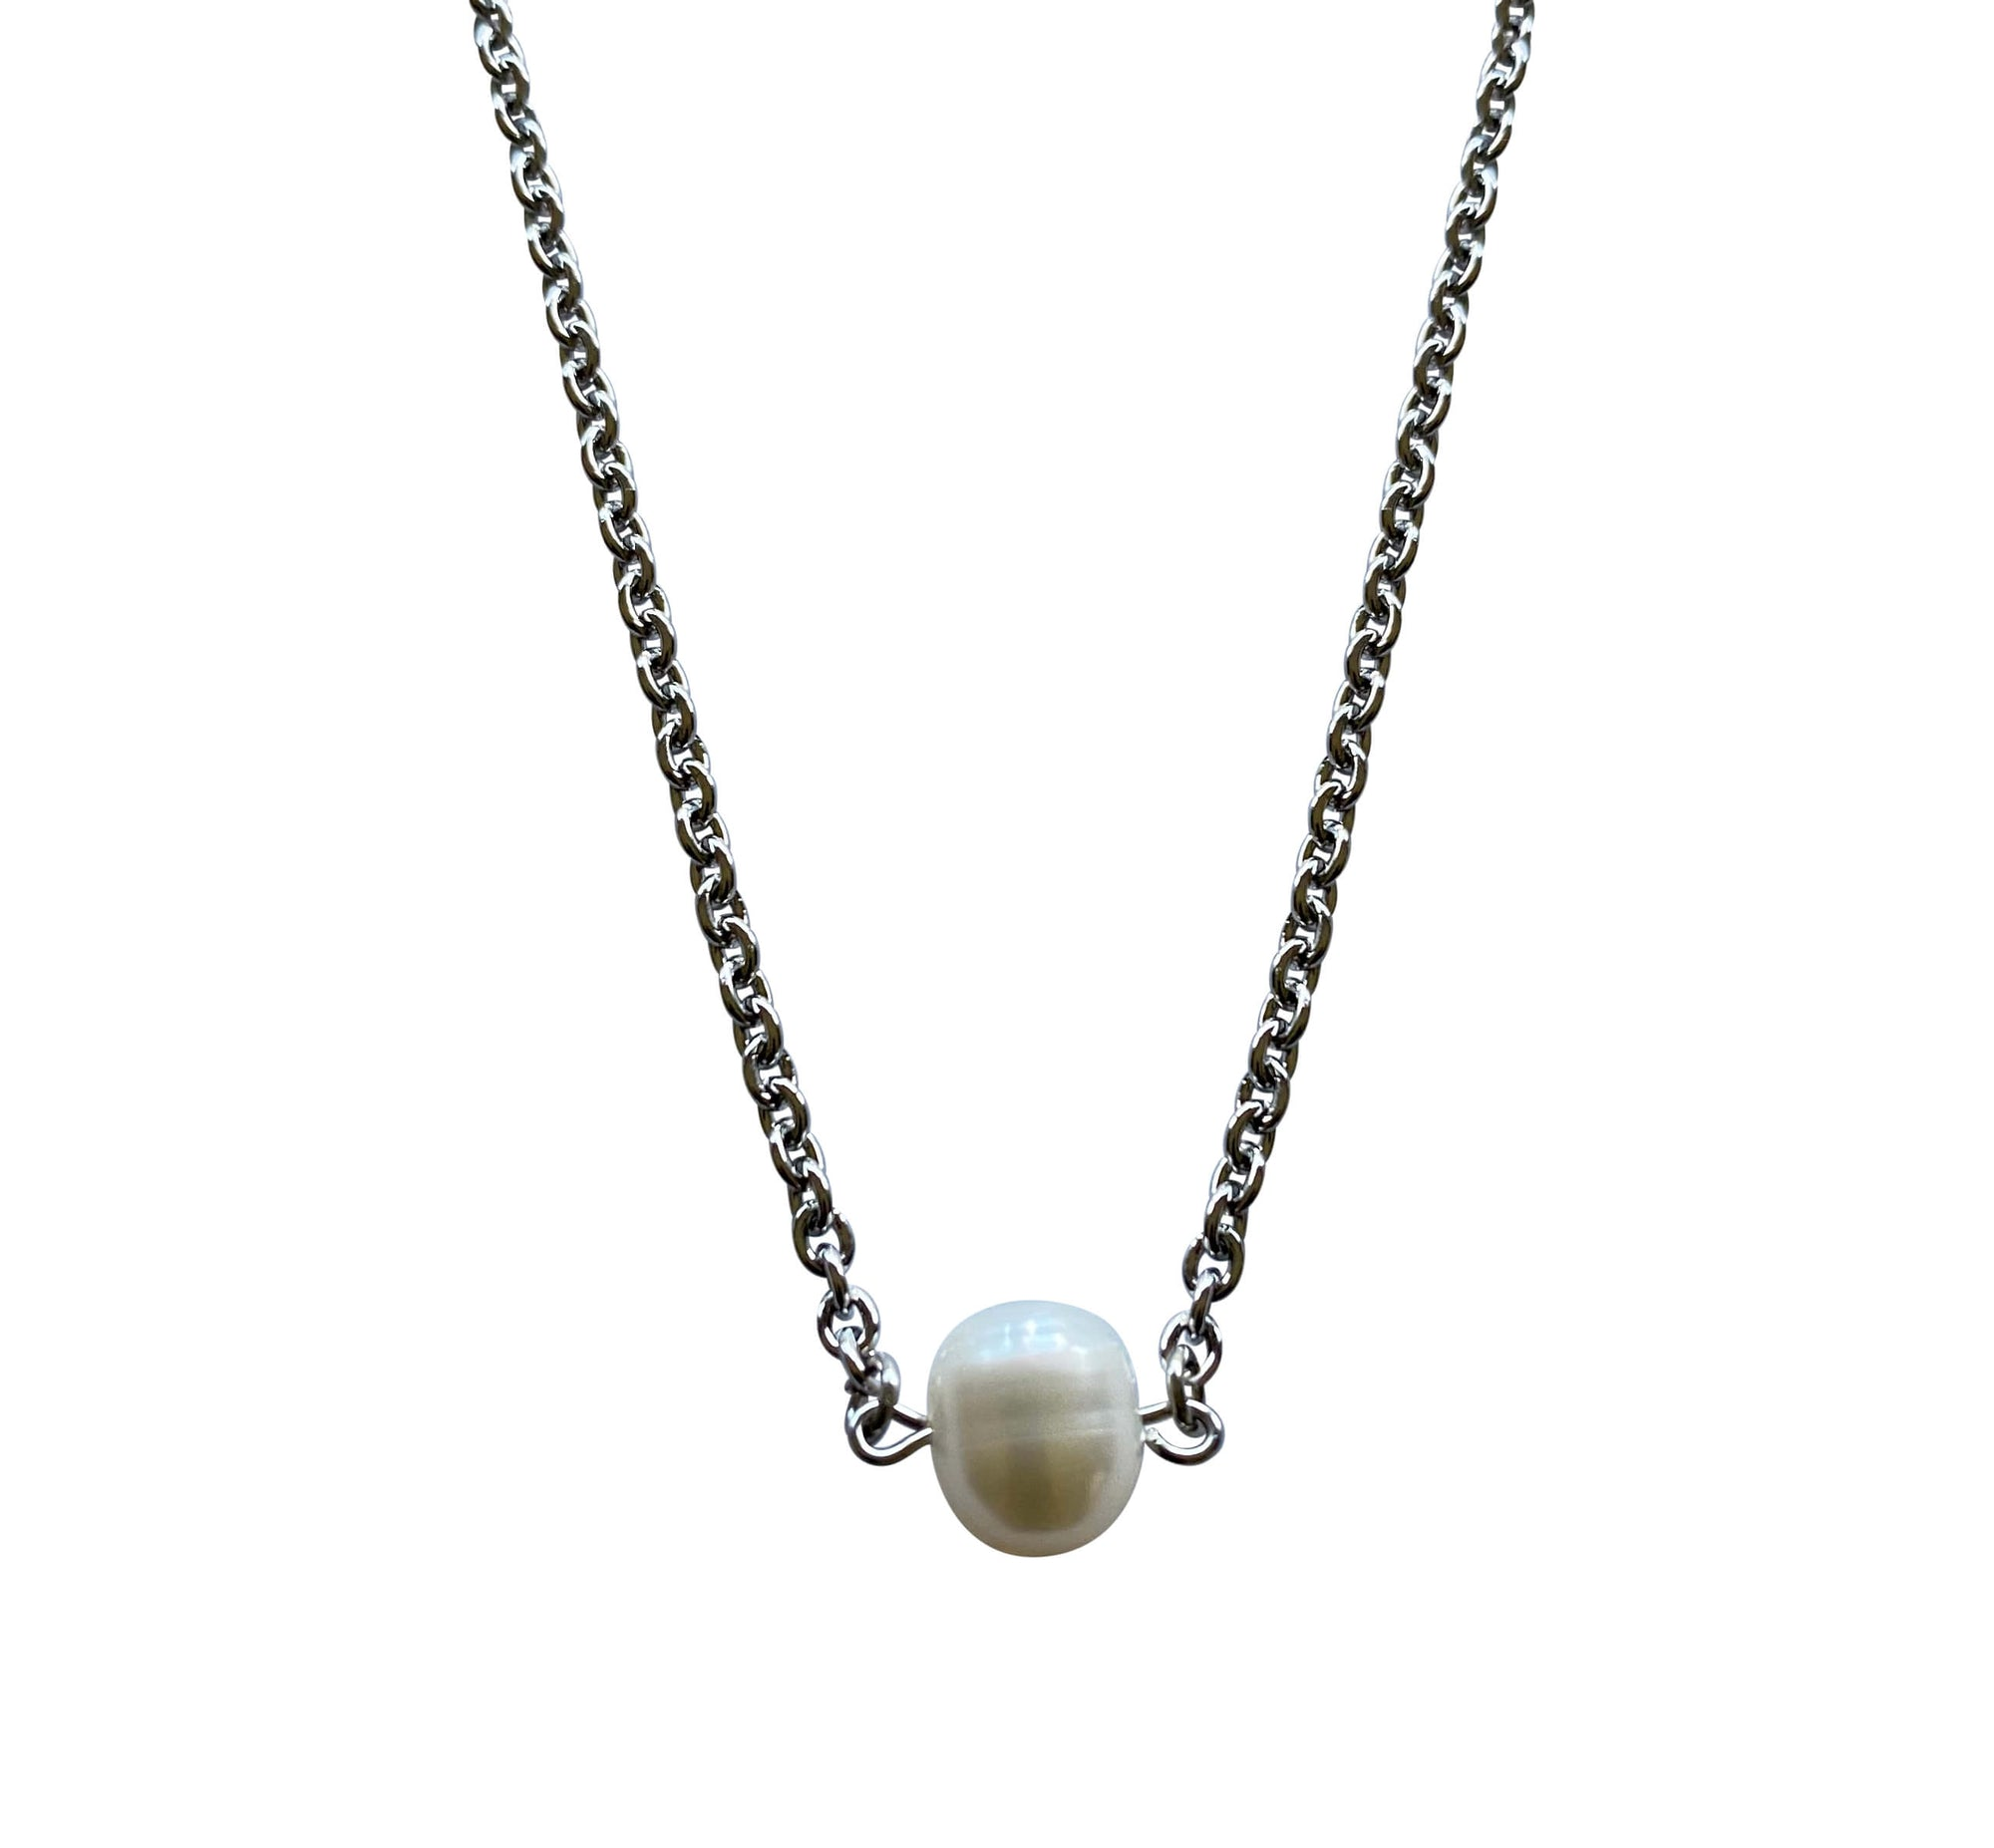 Single Round Freshwater Pearl Necklace with Stainless Steel Silver Chain